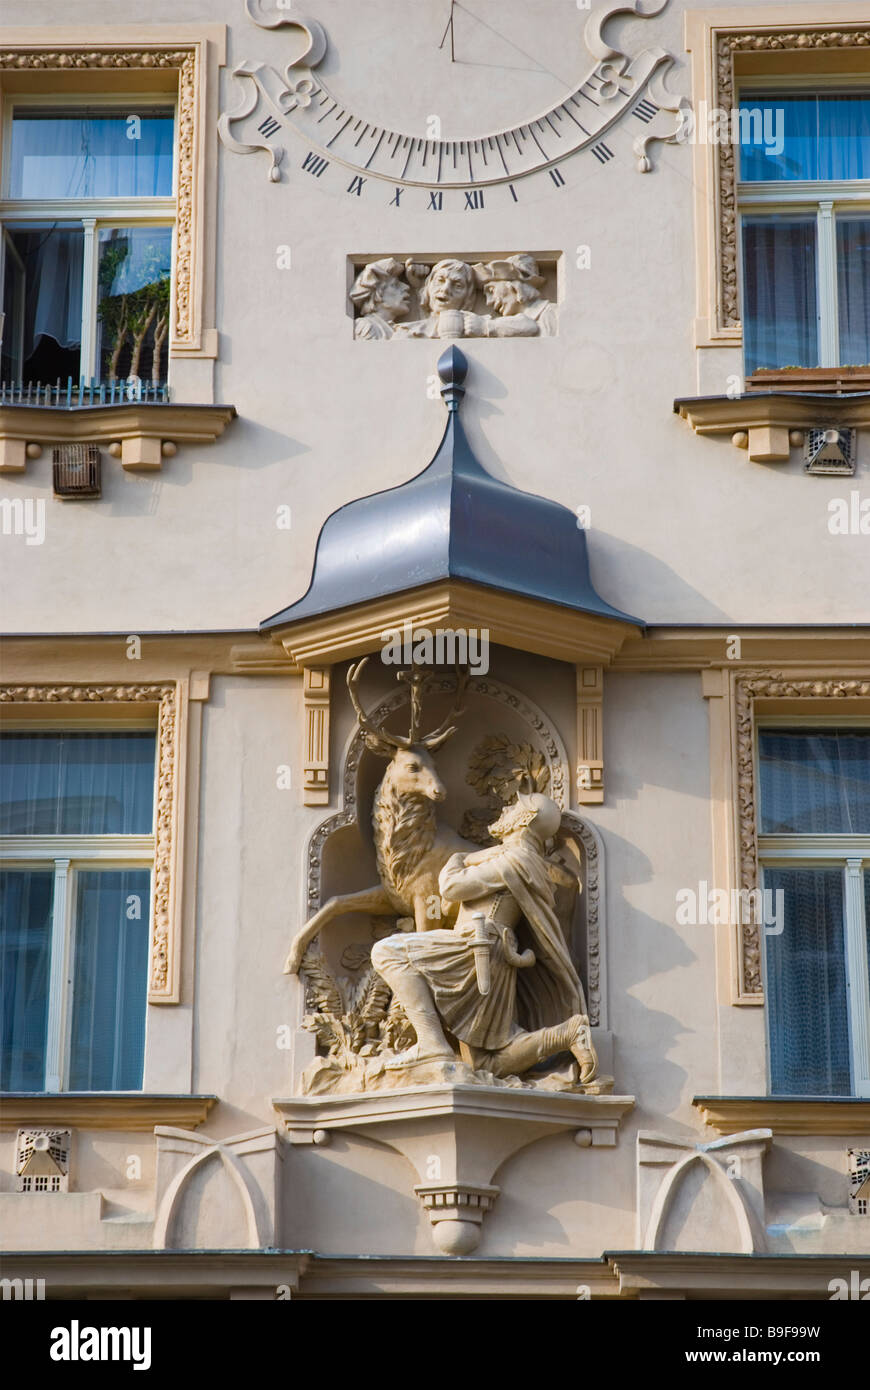 Heraldic house sign on a side of a building in Zizkov district in Prague Czech Republic Europe - Stock Image